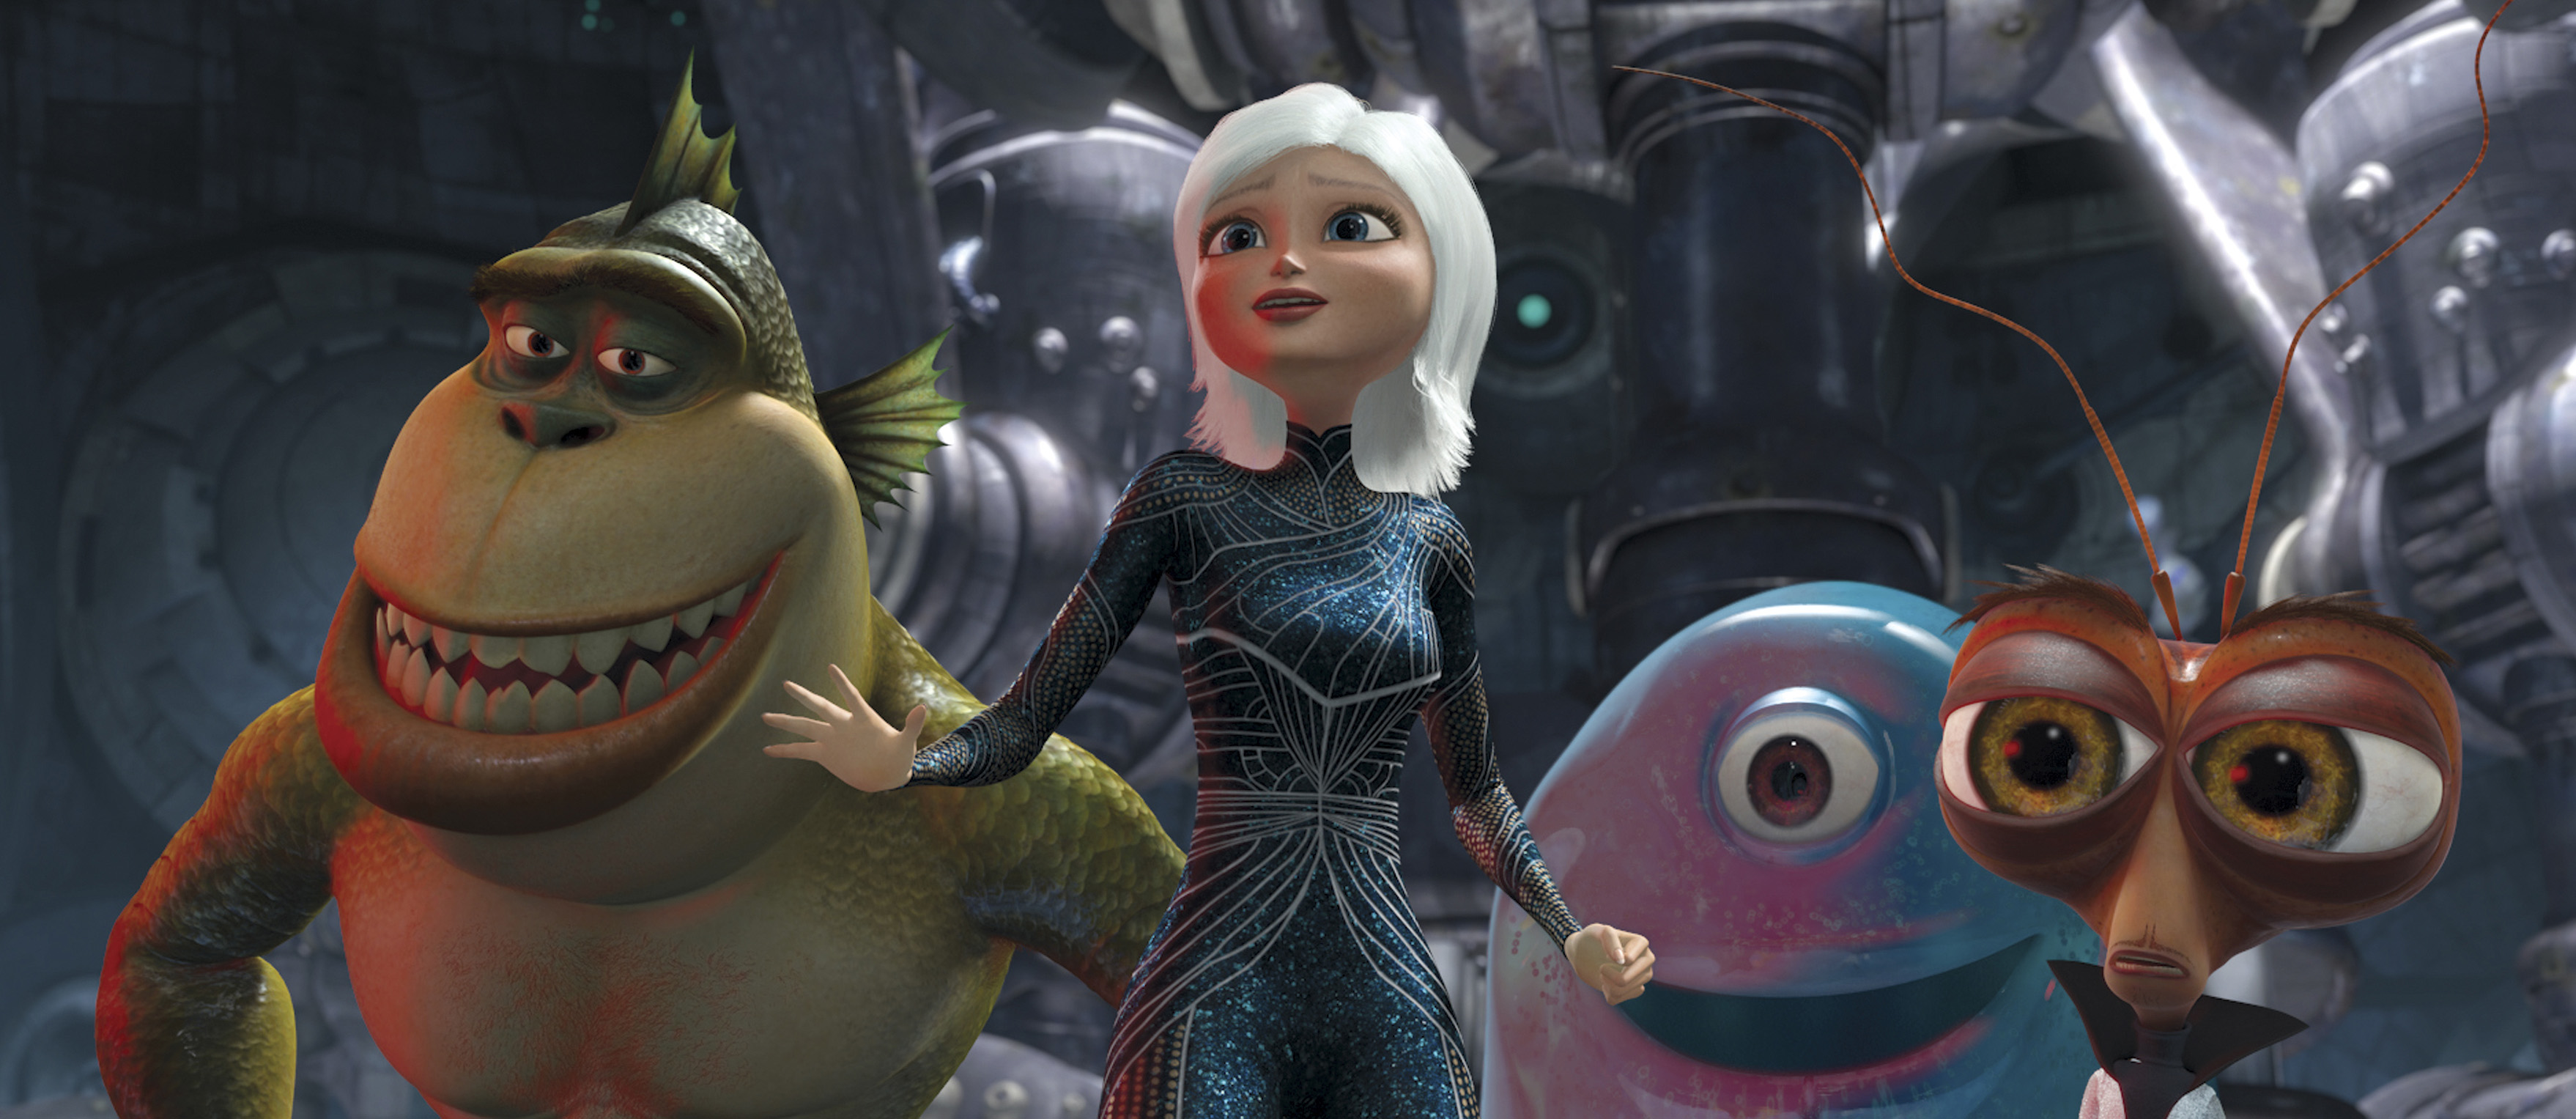 "From left, The Missing Link, Ginormica, B.O.B. and Dr. Cockroach in a scene from the animated movie ""Monsters Vs. Aliens."""